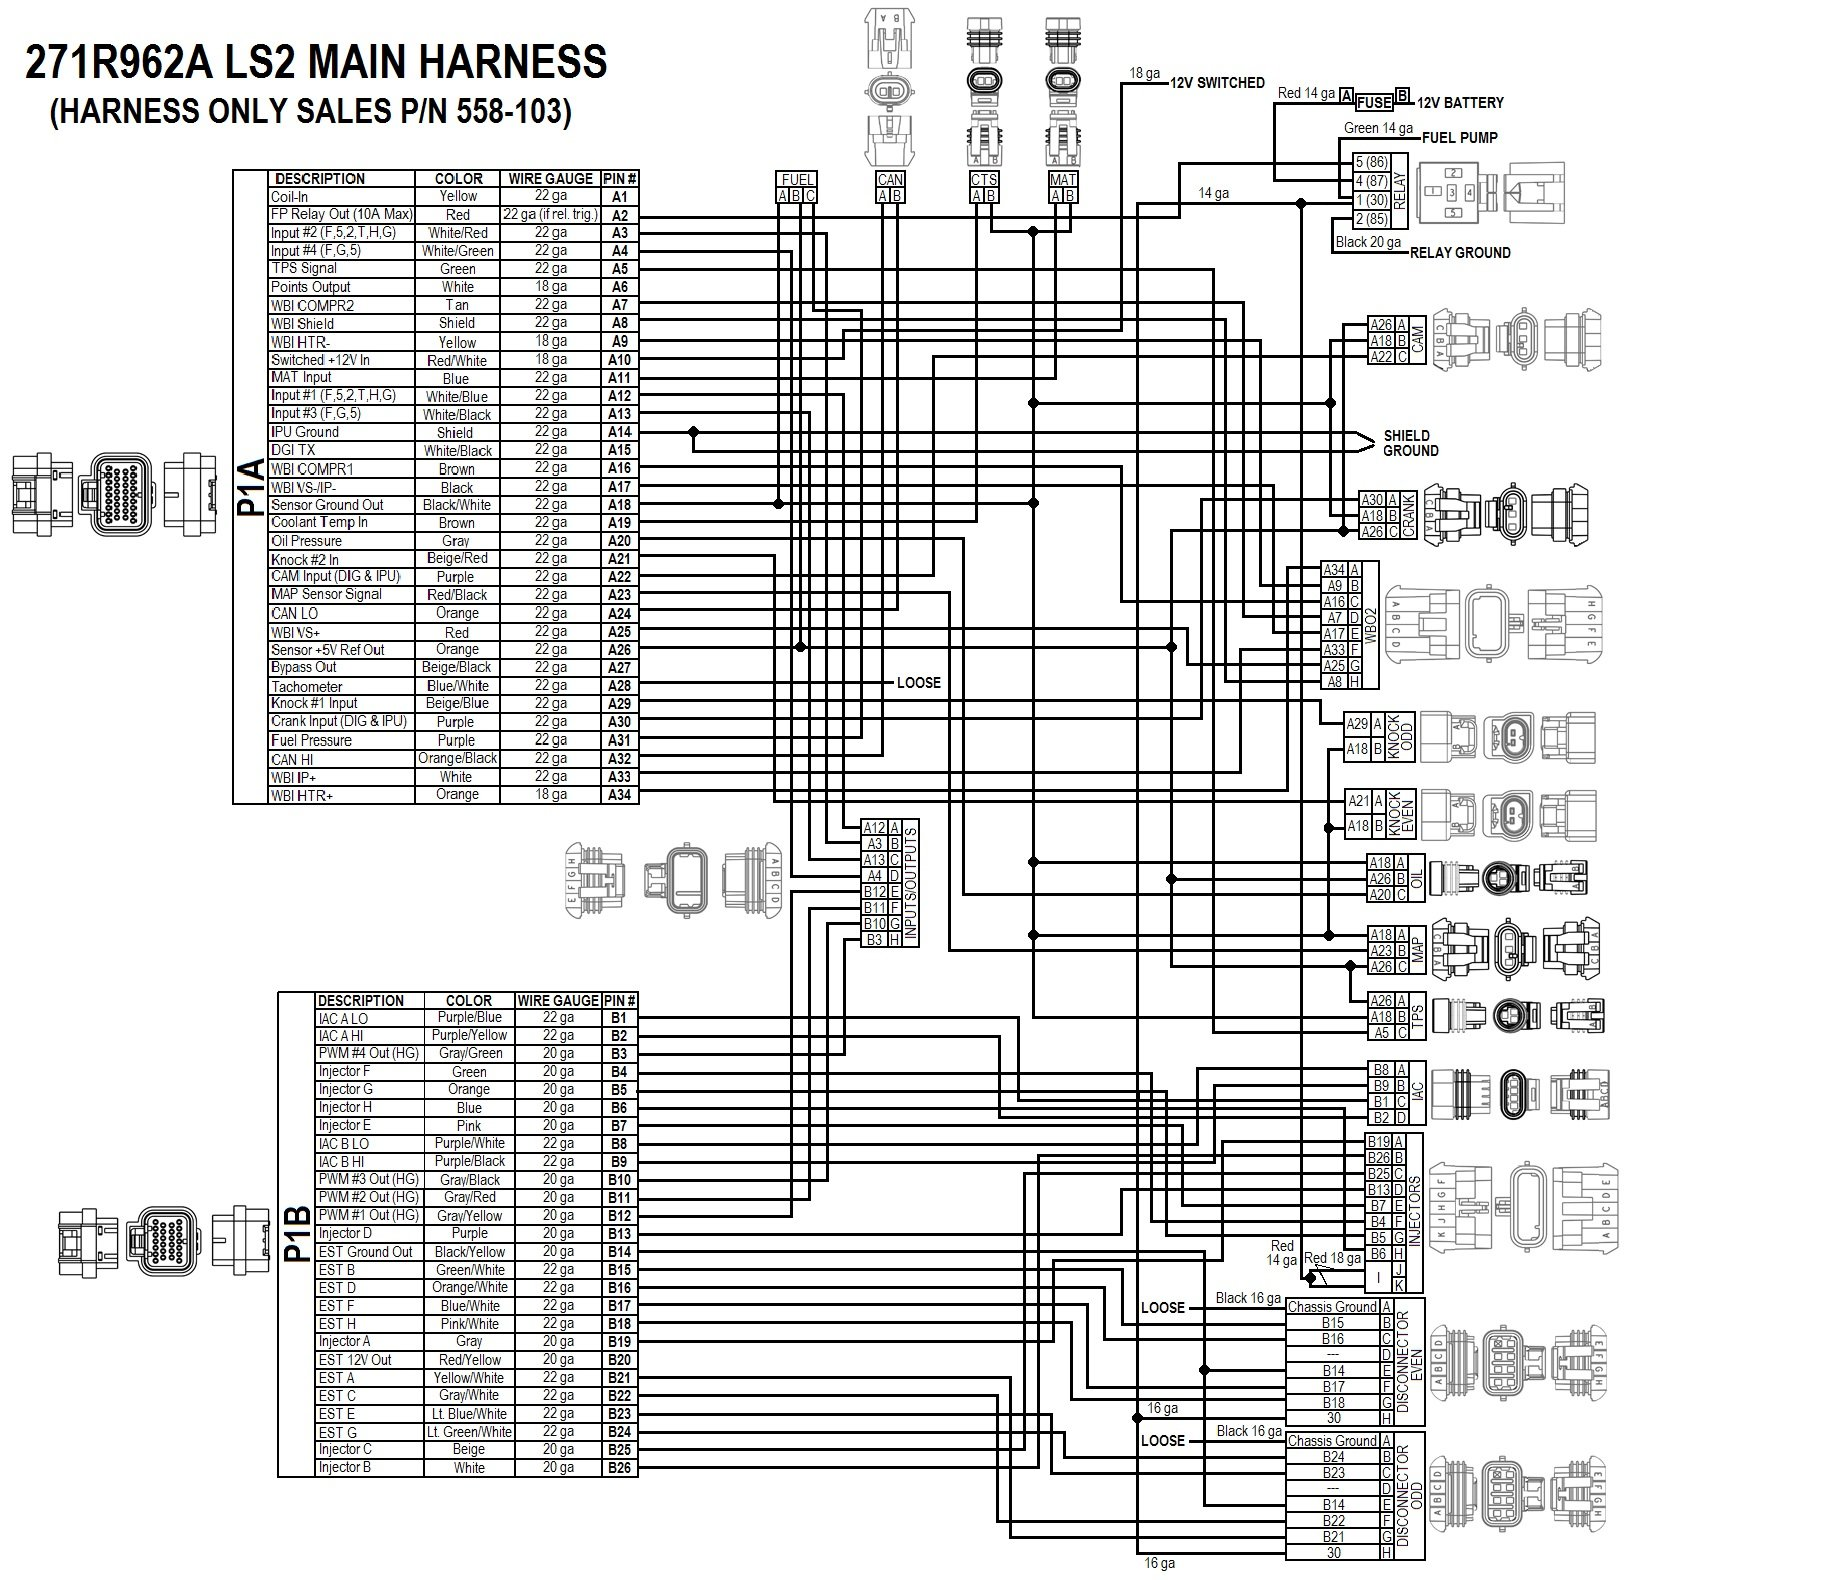 Efi Wiring Diagram | Wiring Diagrams on 3.7 mercruiser thermostat, 3.7 mercruiser voltage regulator, 3.7 mercruiser exhaust,